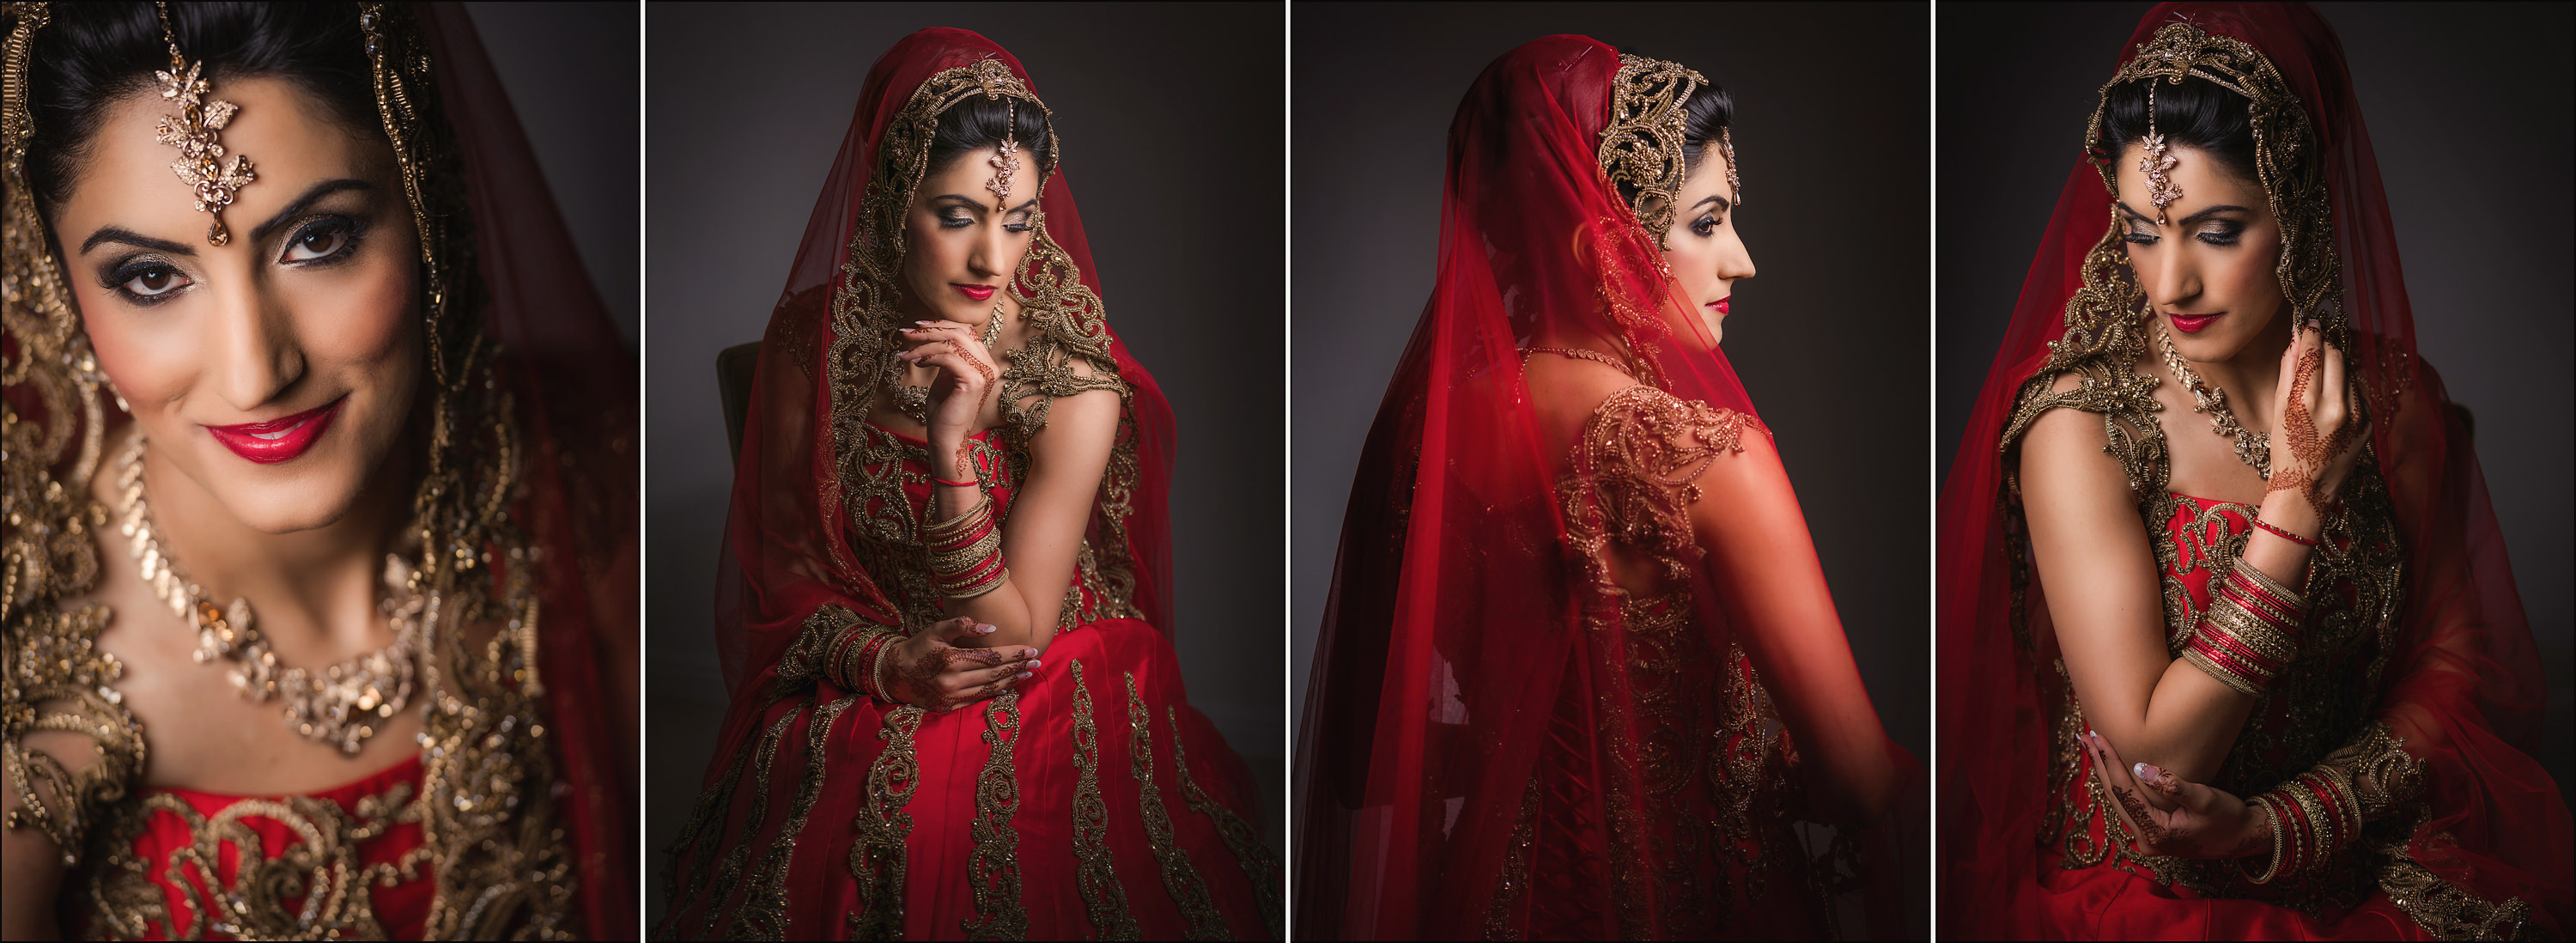 best-asian-wedding-ragley-hall-didar-virdi-4